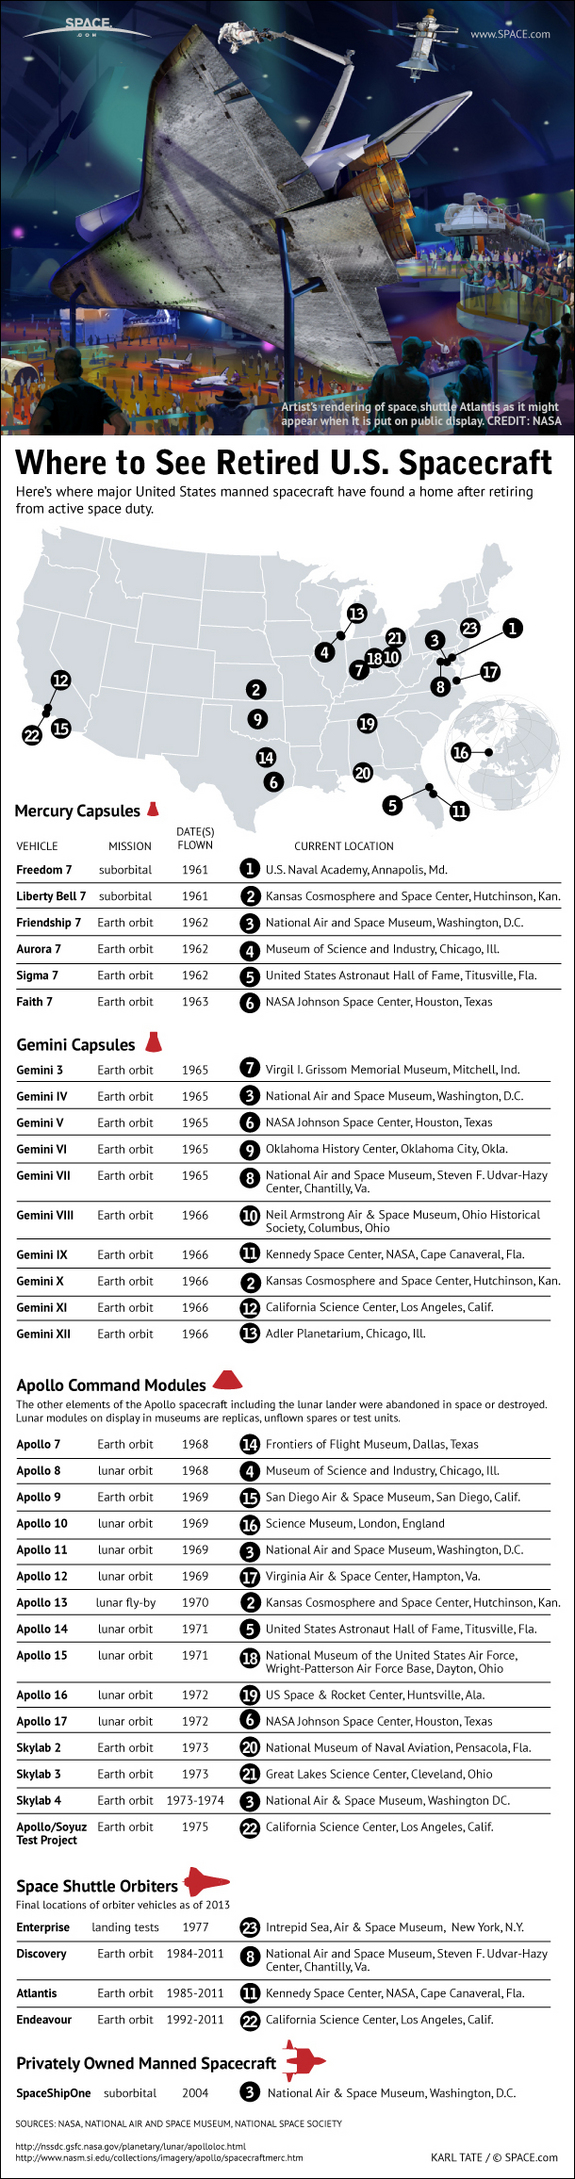 Find out where to see actual shuttles and space capsules that have returned from real missions around the Earth and the moon, in this SPACE.com infographic.